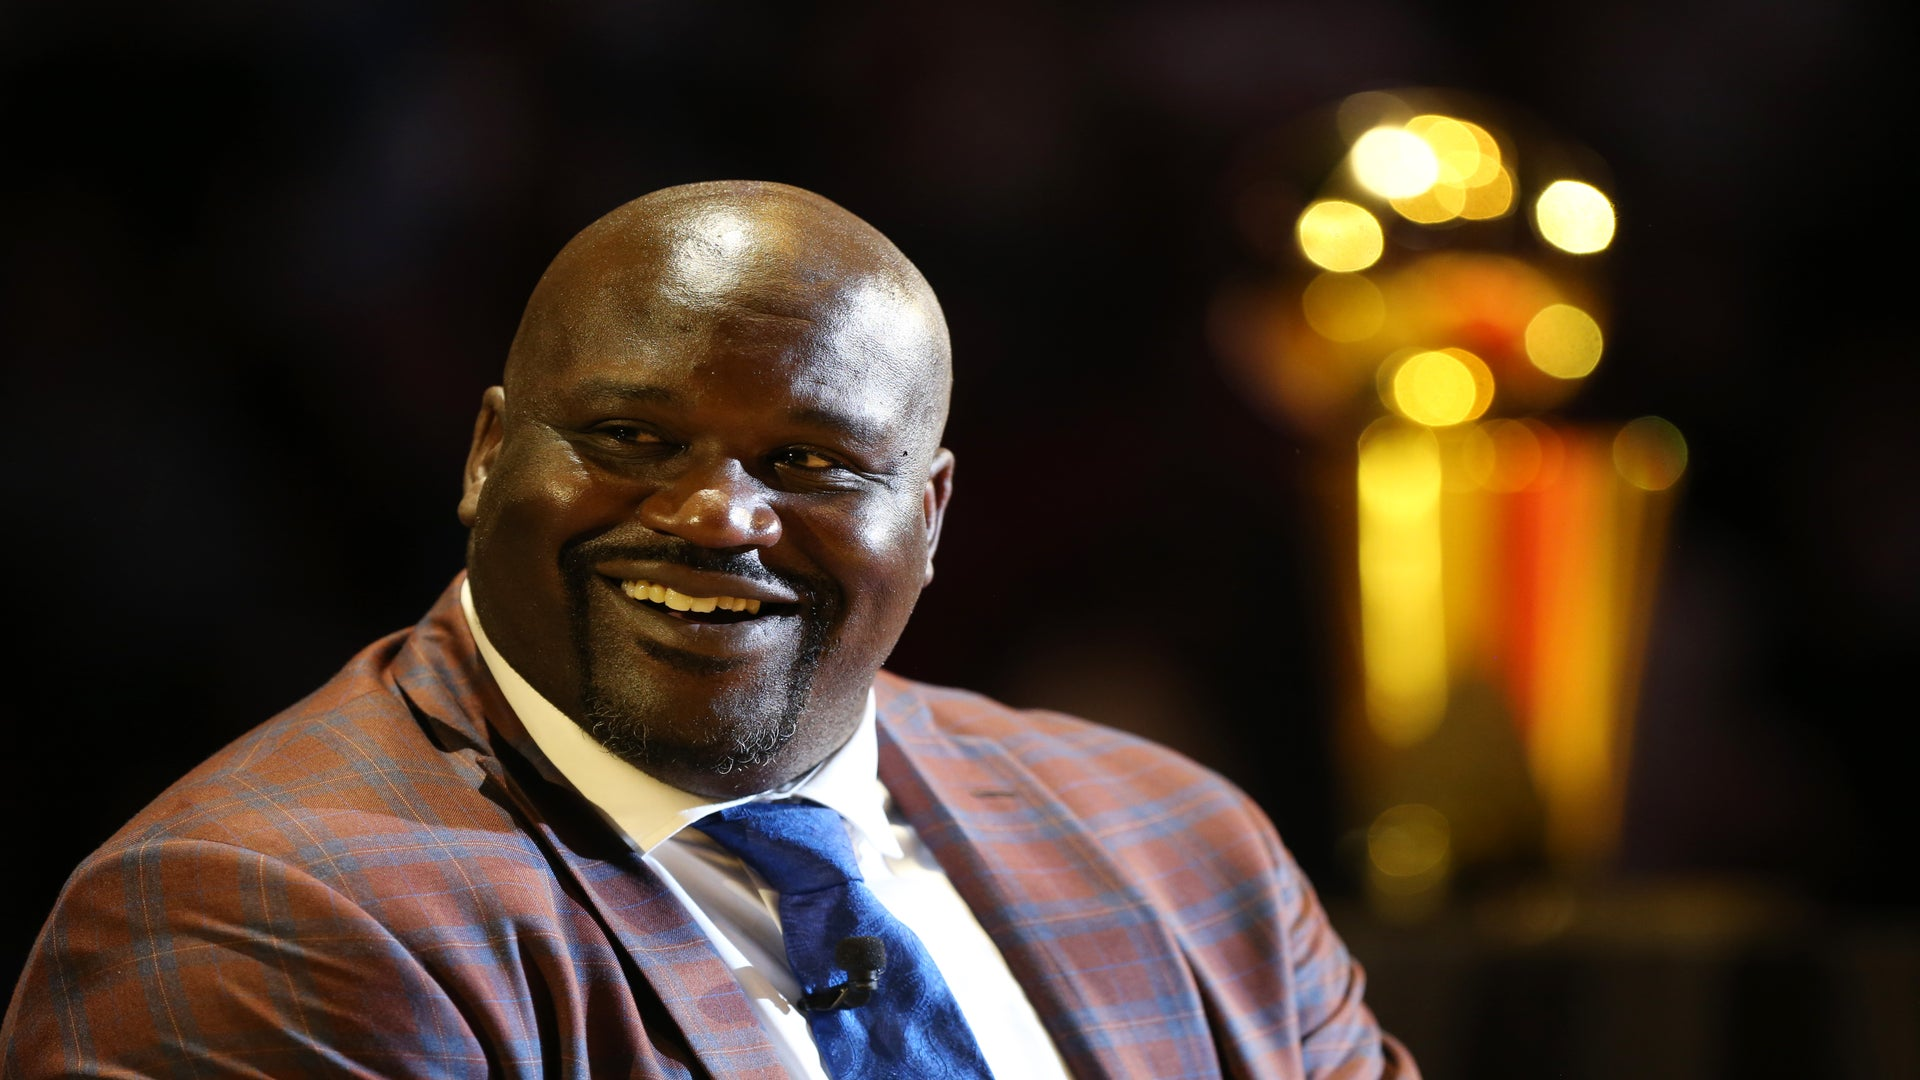 Shaquille O'Neal To Cover Funeral Expenses For Georgia Teen Who Fatally Shot Himself Live On Instagram